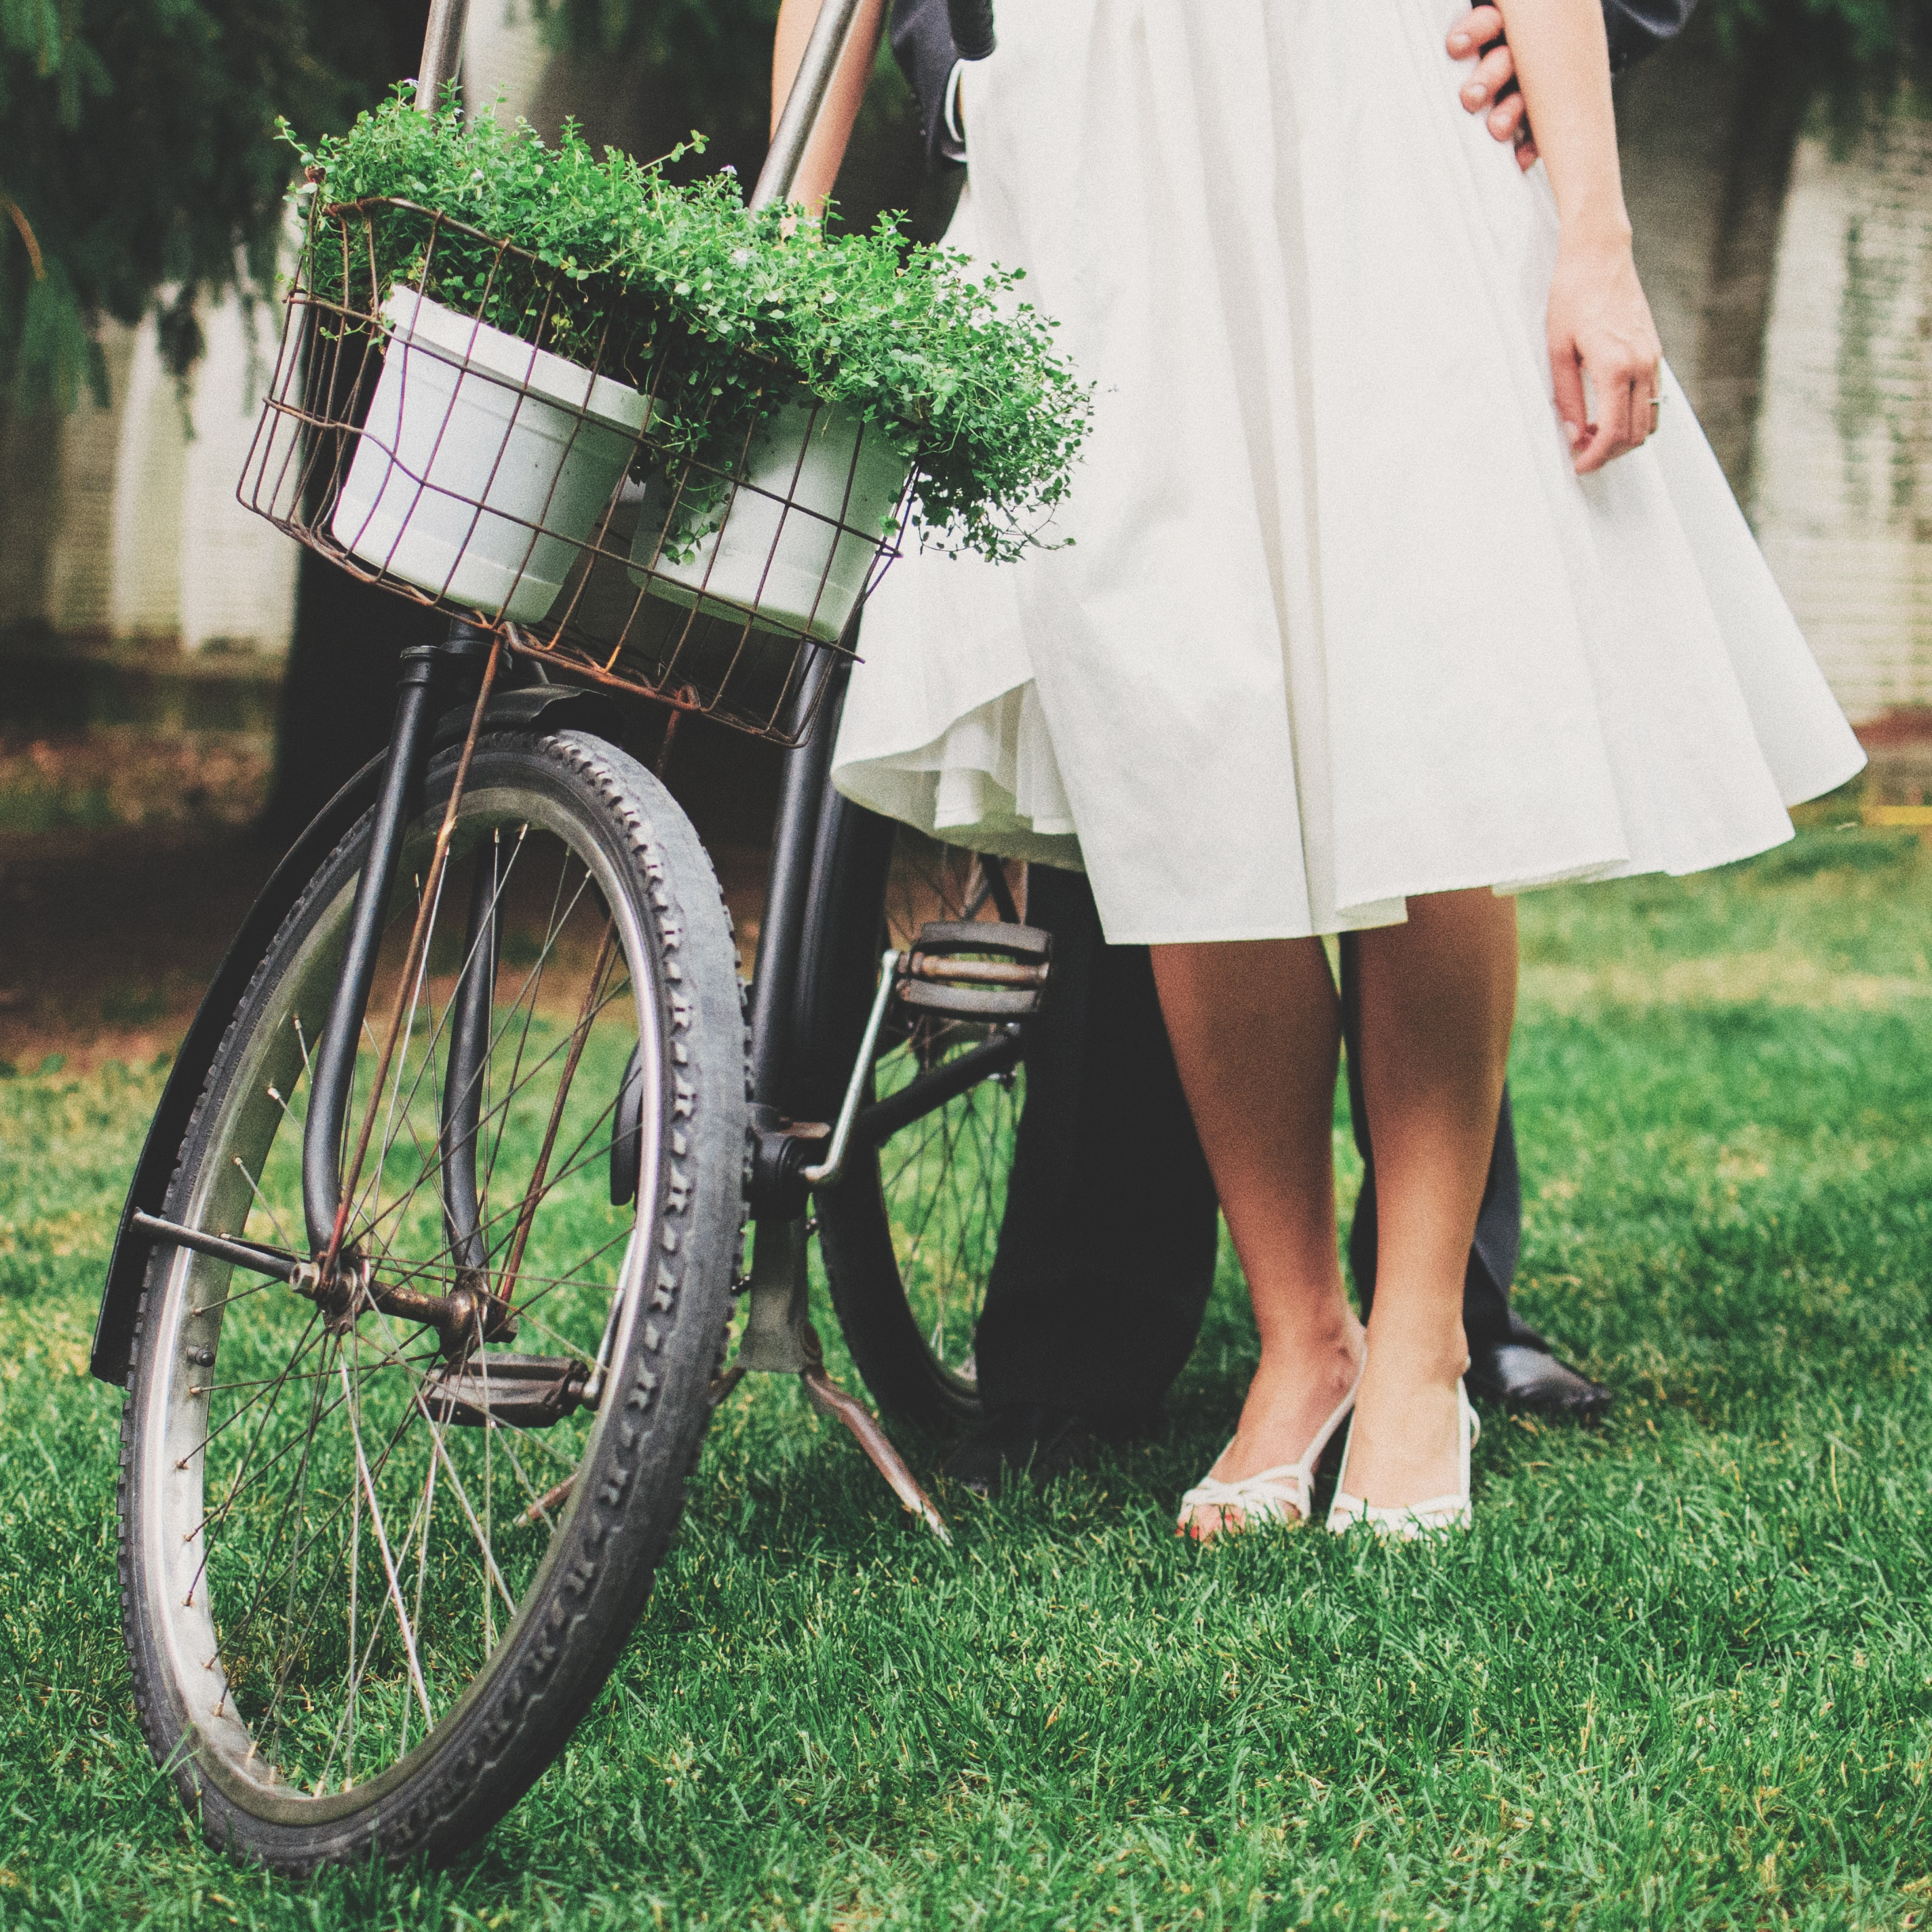 Wedding couple beside bike with a basket of plants on front